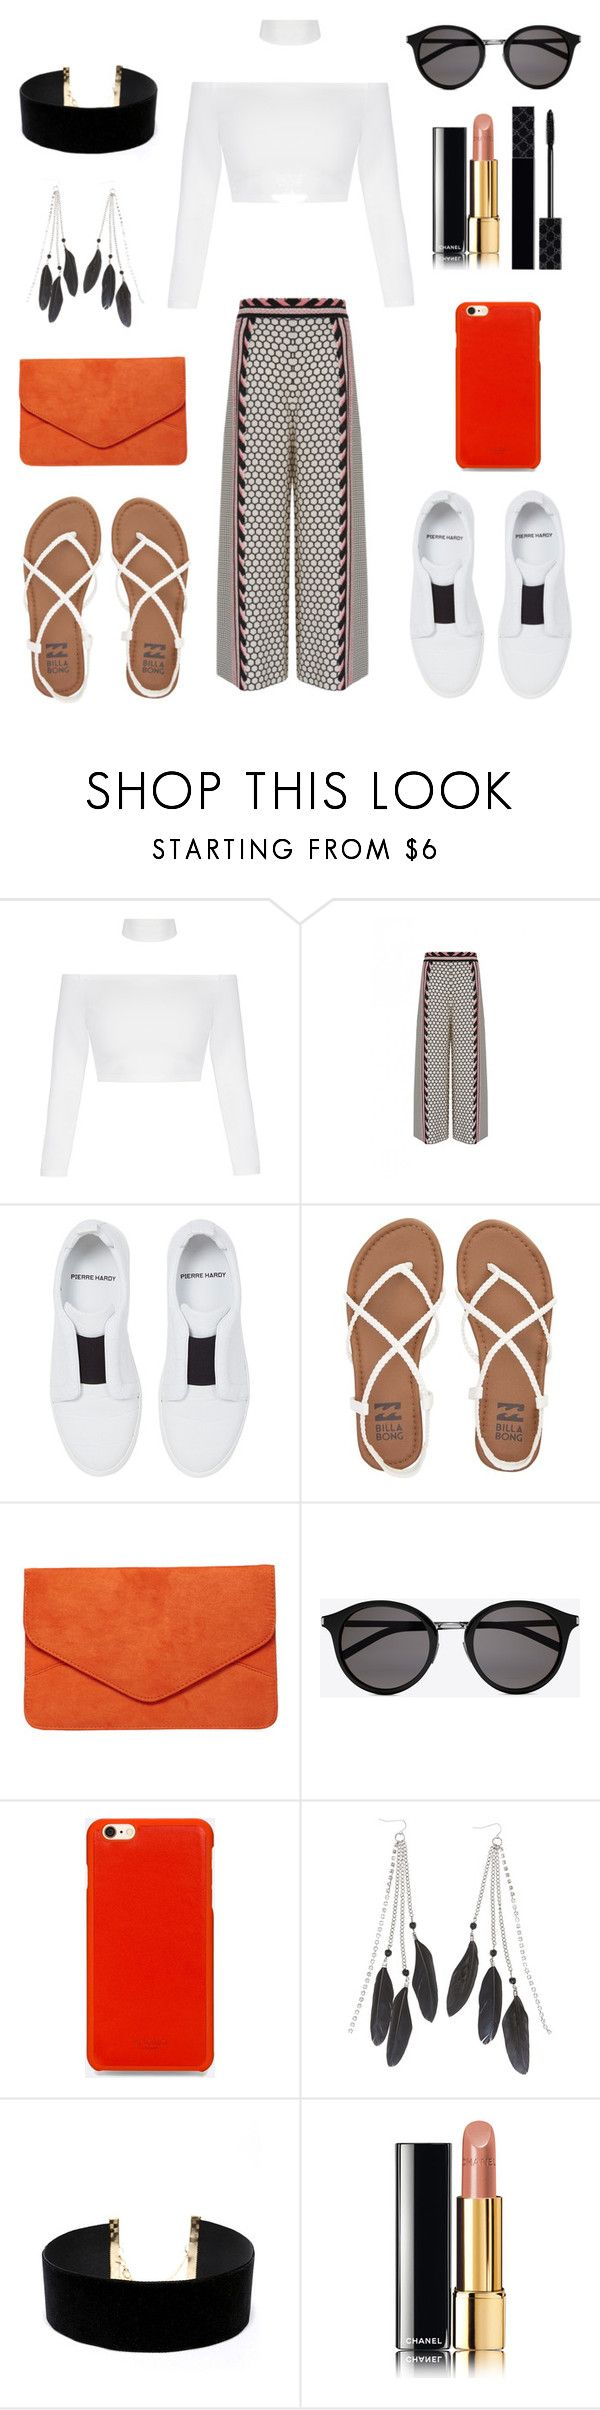 """""""Jasmine Style"""" by rahav-com ❤ liked on Polyvore featuring Temperley London, Pierre Hardy, Billabong, Dorothy Perkins, Yves Saint Laurent, Knomo, Charlotte Russe, LULUS, Chanel and Gucci"""